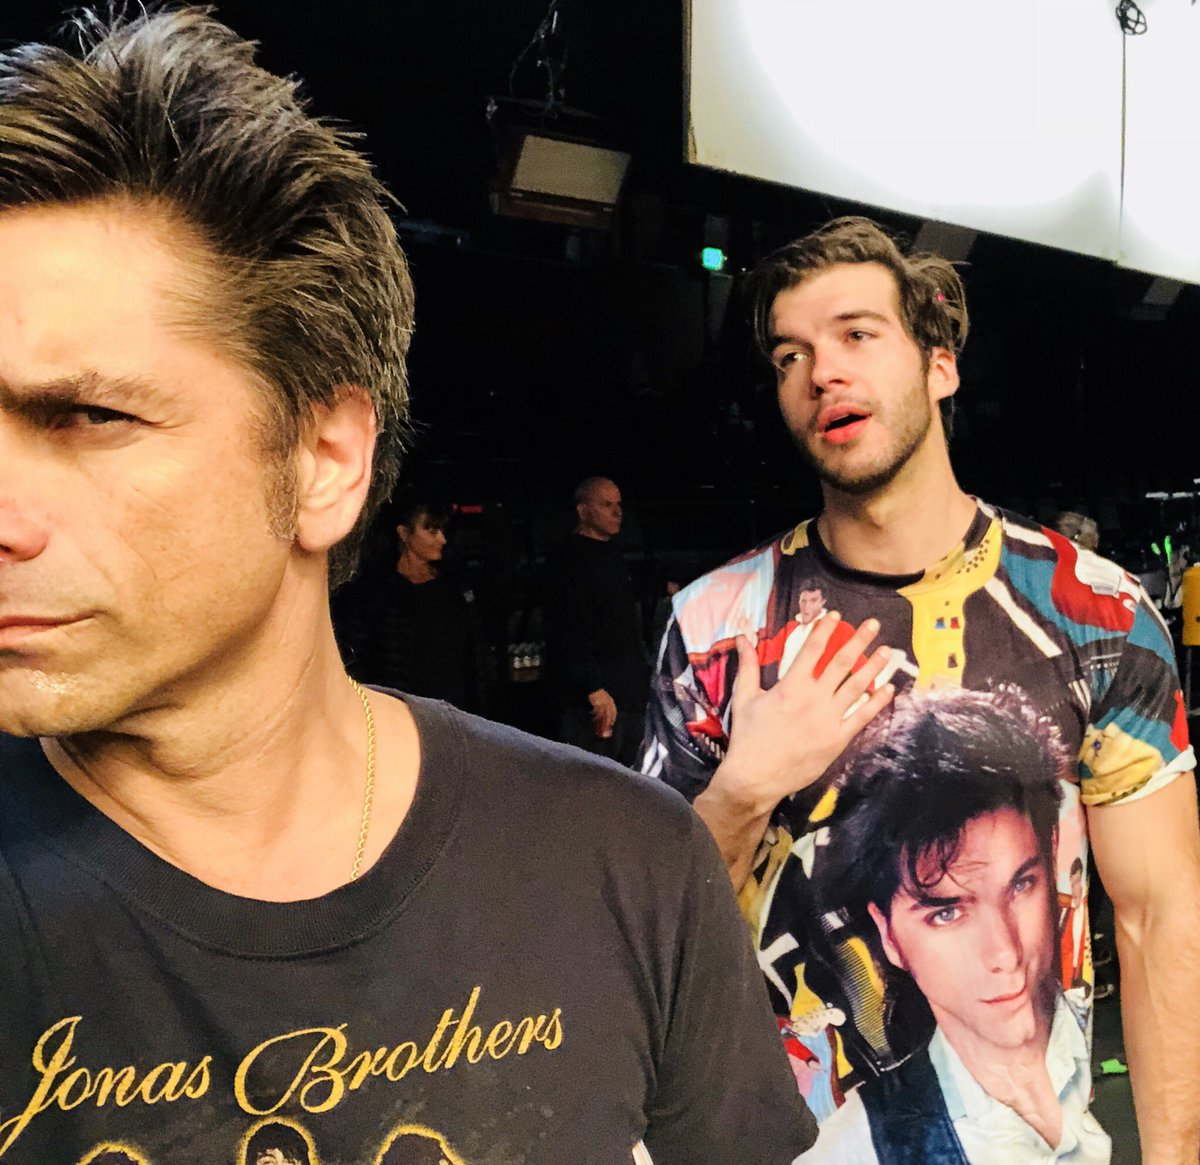 Sure @JohnStamos is a dream boat. But which one of us is wearing a cooler T-shirt? <br>http://pic.twitter.com/BqudebfYjJ